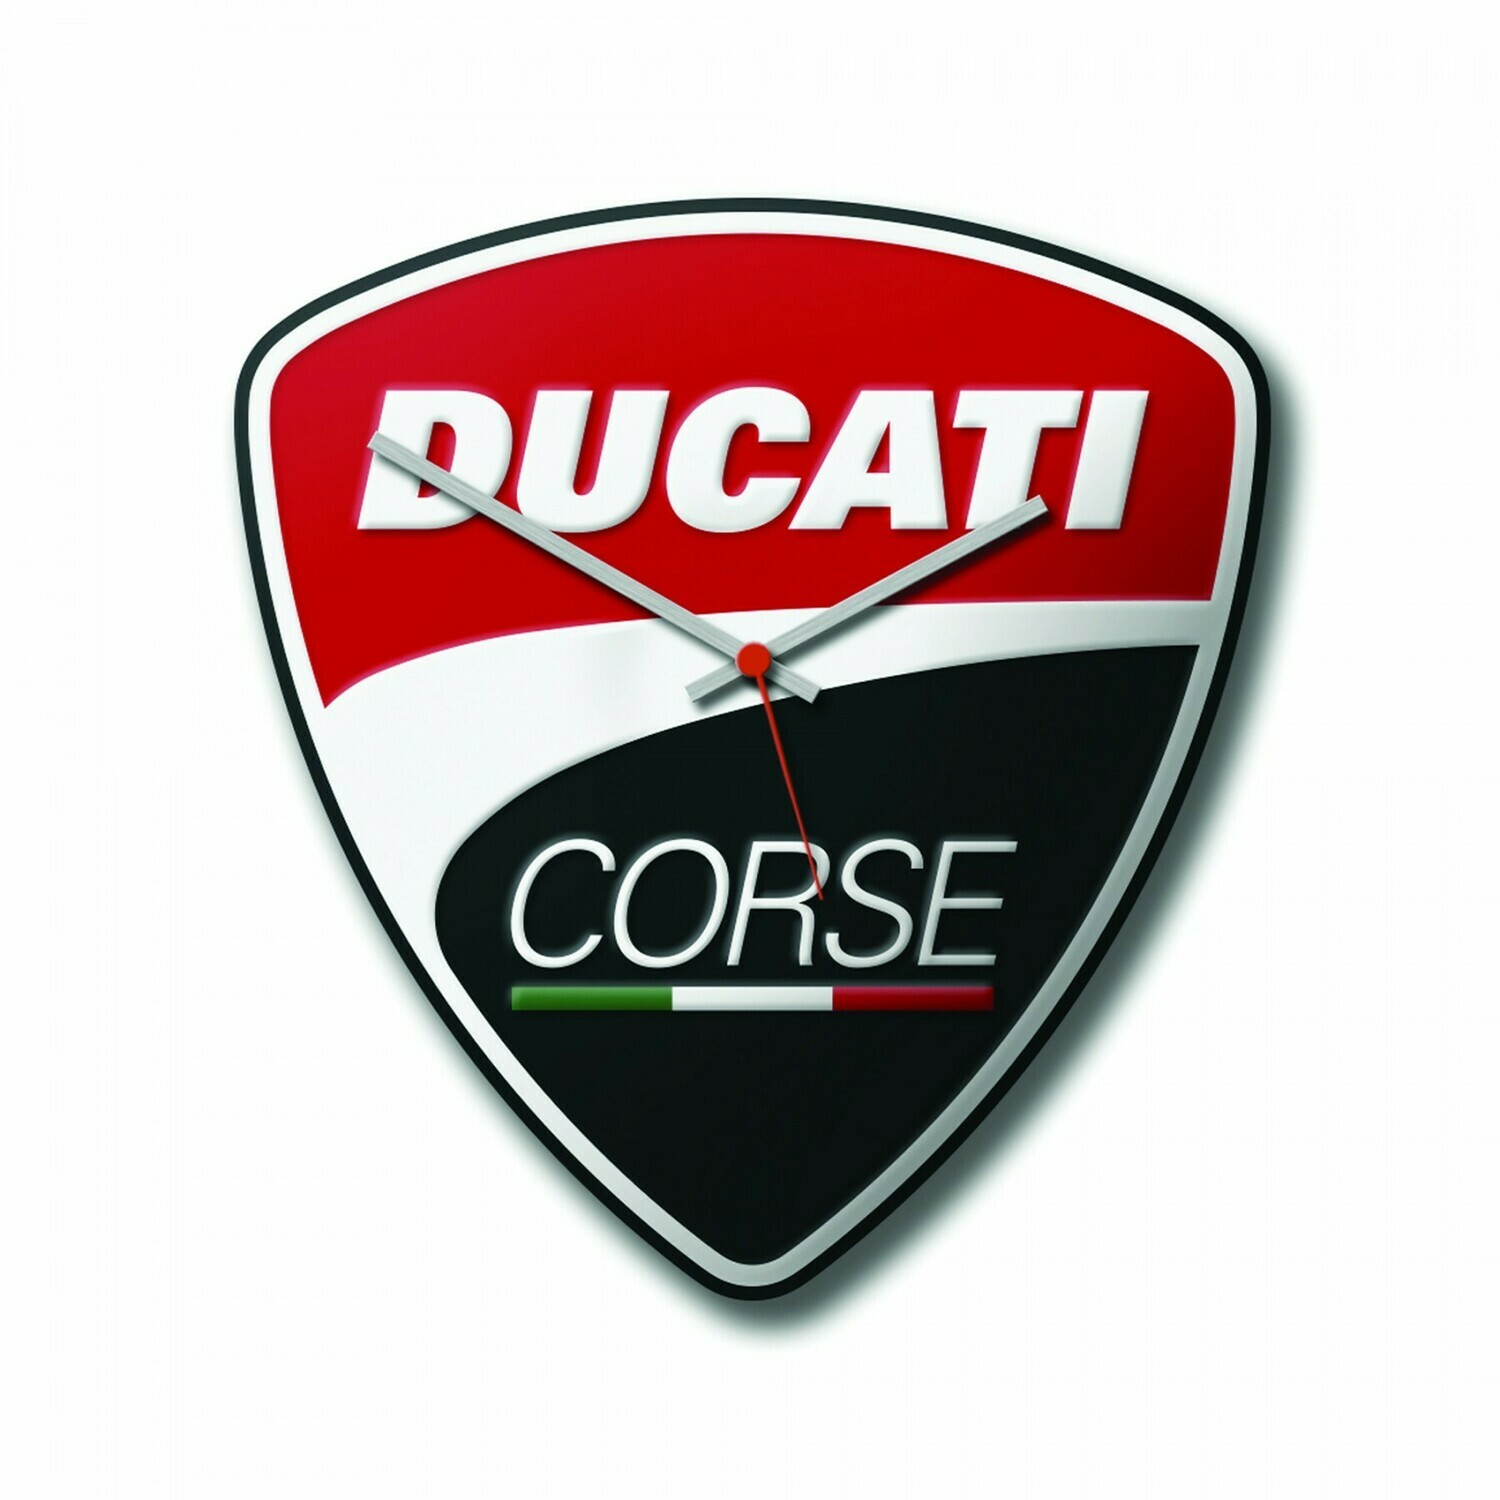 Wall clock Power Ducati Corse 28x30 cm